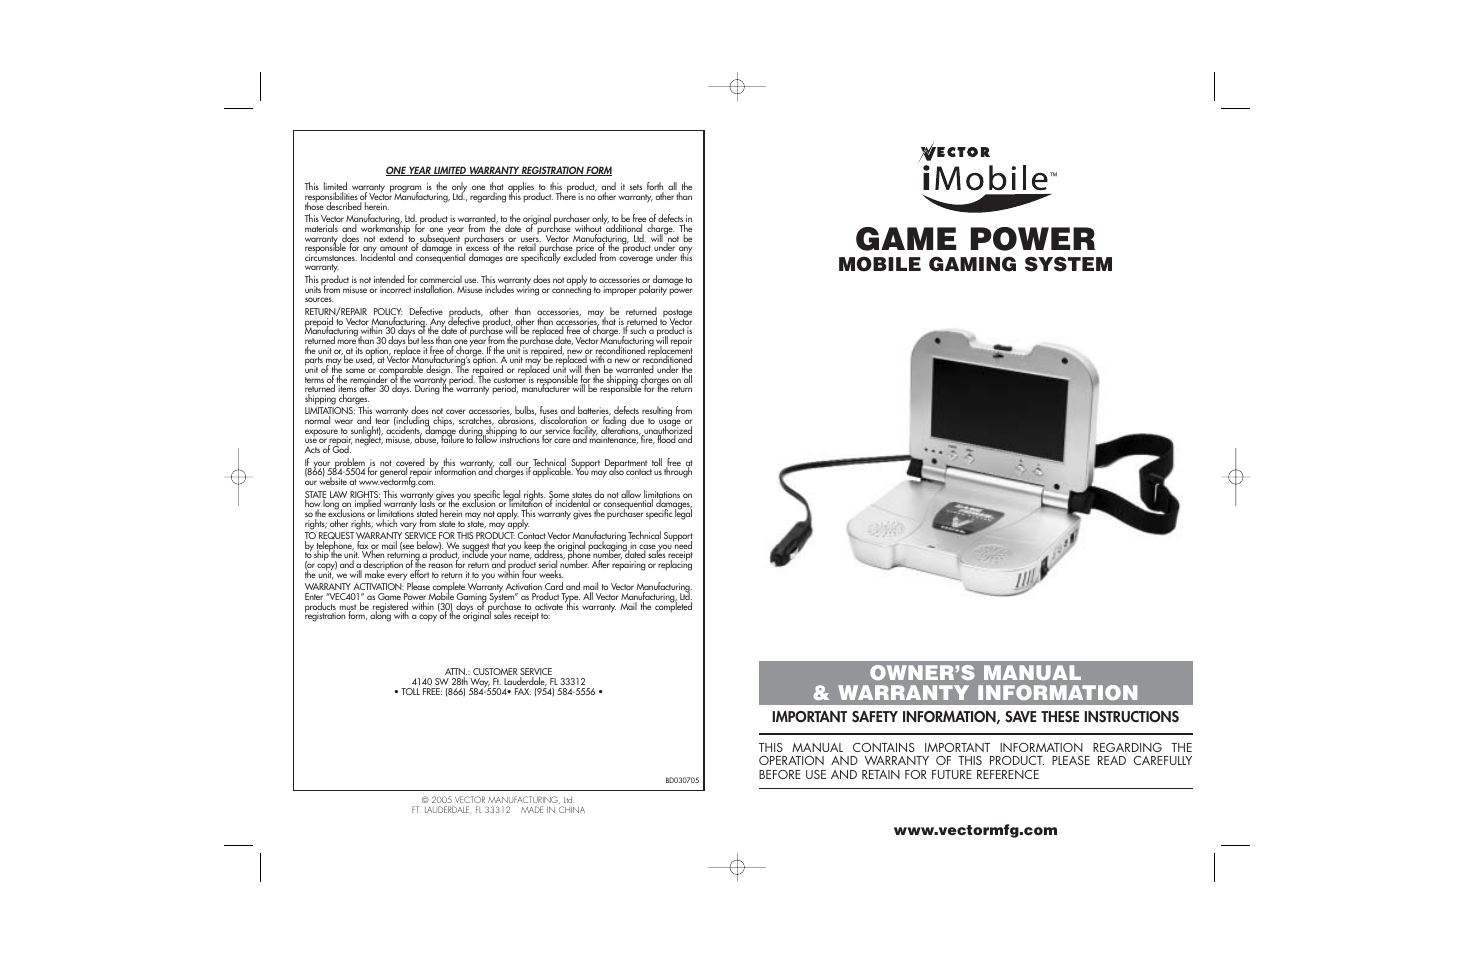 Vector imobile vec401 user manual 8 pages publicscrutiny Image collections